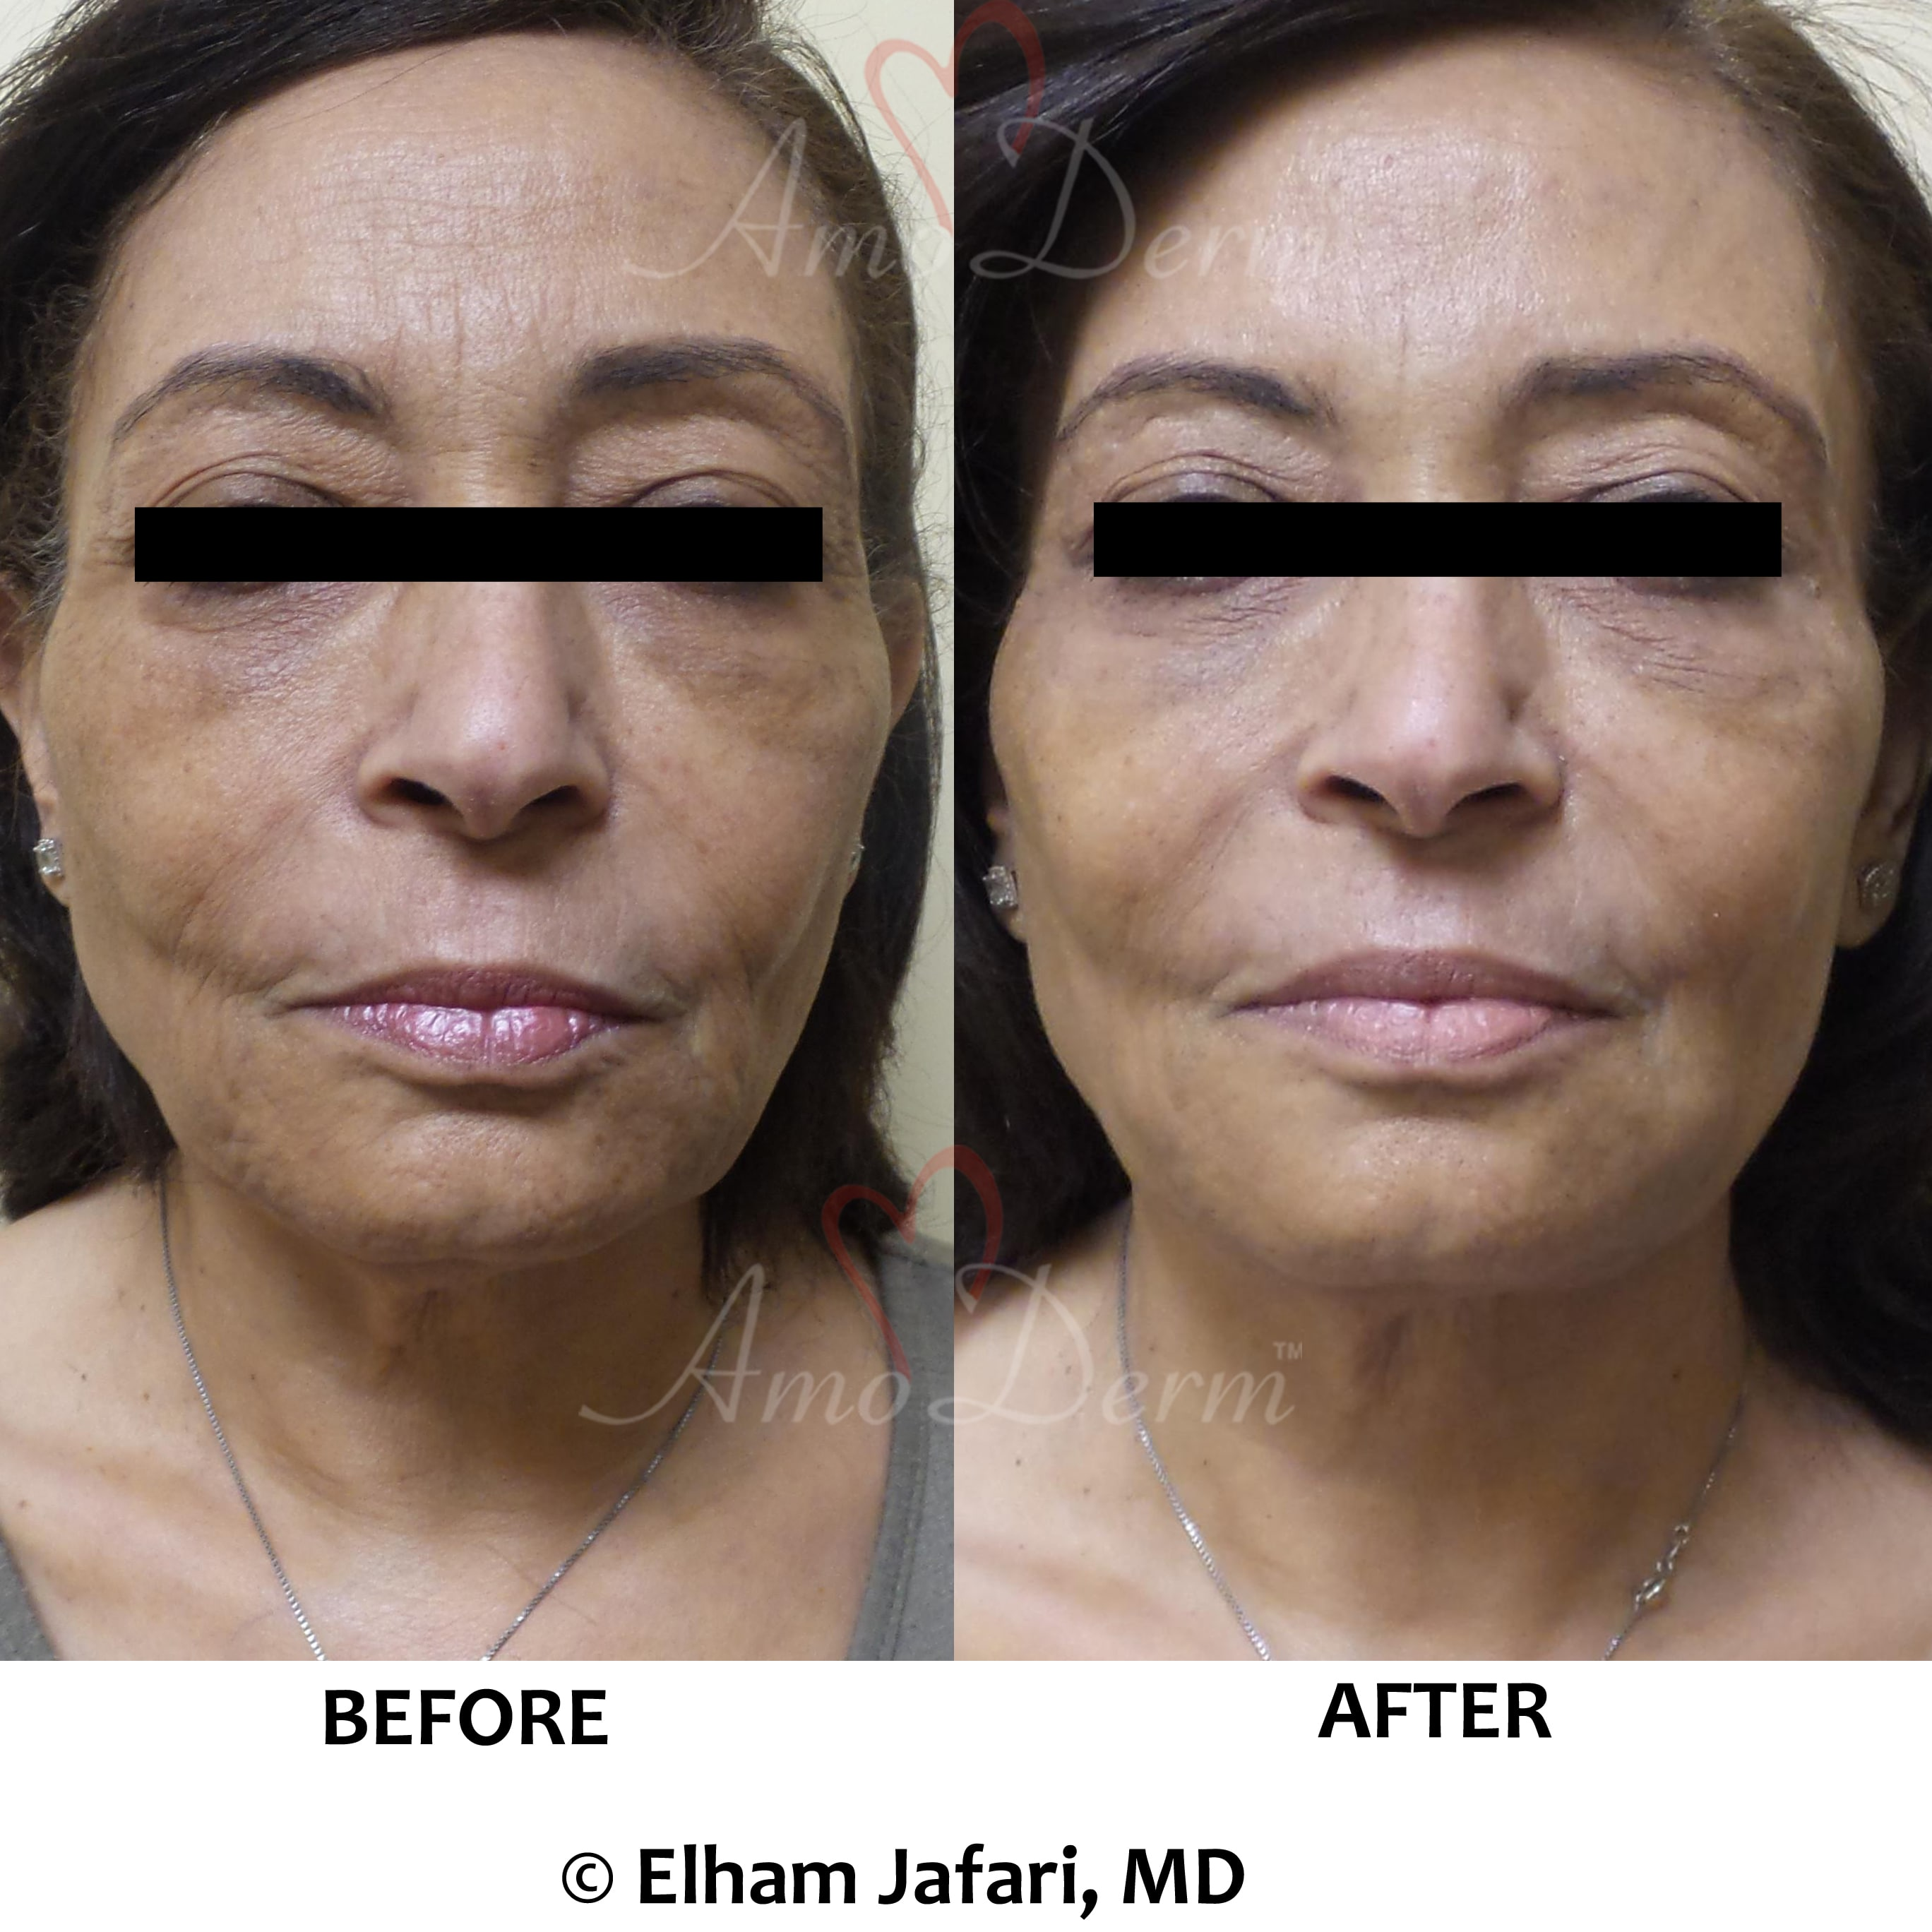 Liquid Facelift in forehead, crow's feet & frown lines & filler in cheeks, nasolabial folds & marionette lines